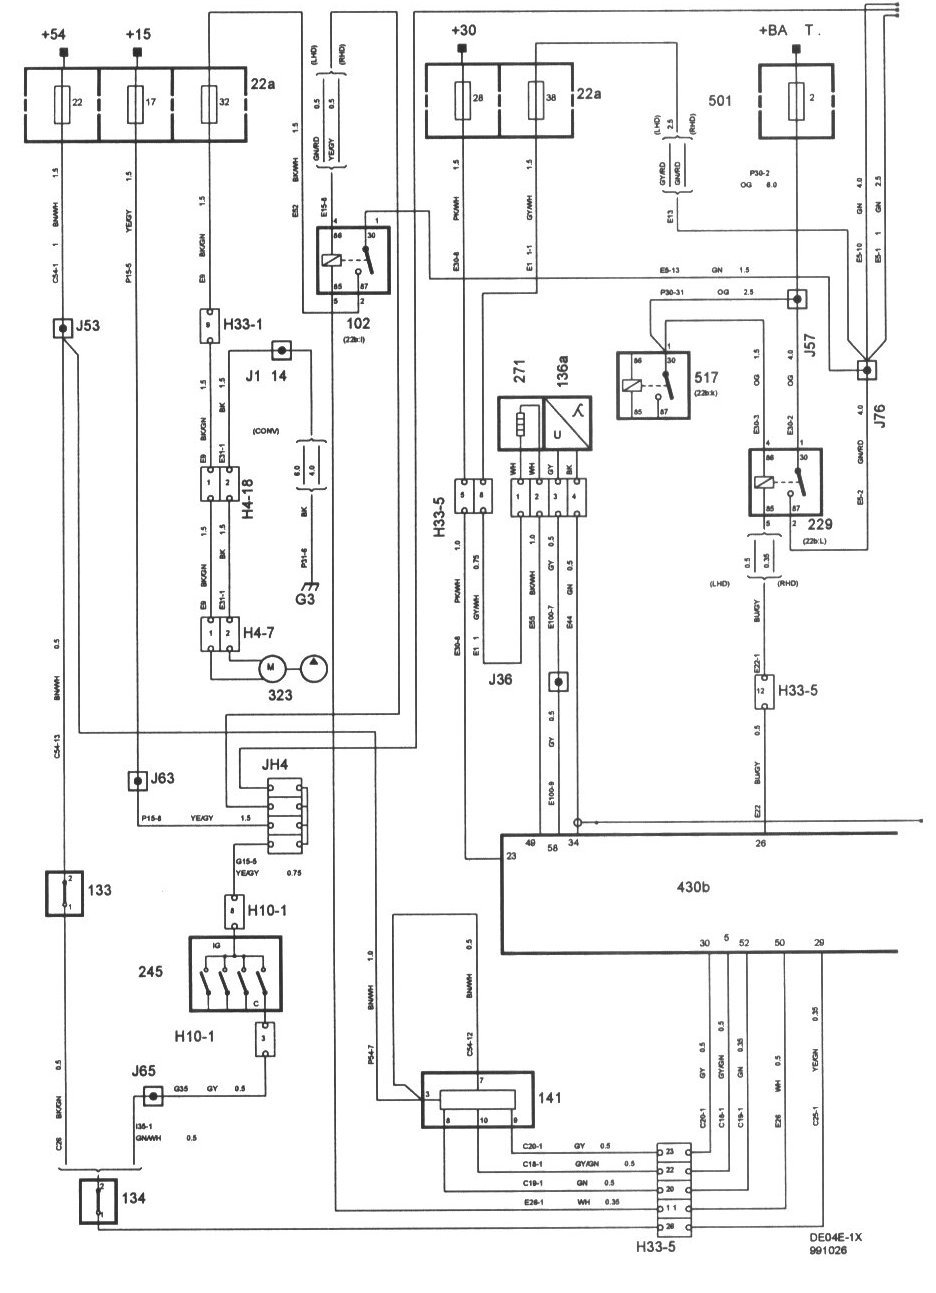 2009 11 20_000940_91380274 2004 saab 9 3 door wiring diagram wiring diagram simonand 2006 saab 93 wiring diagram at mifinder.co